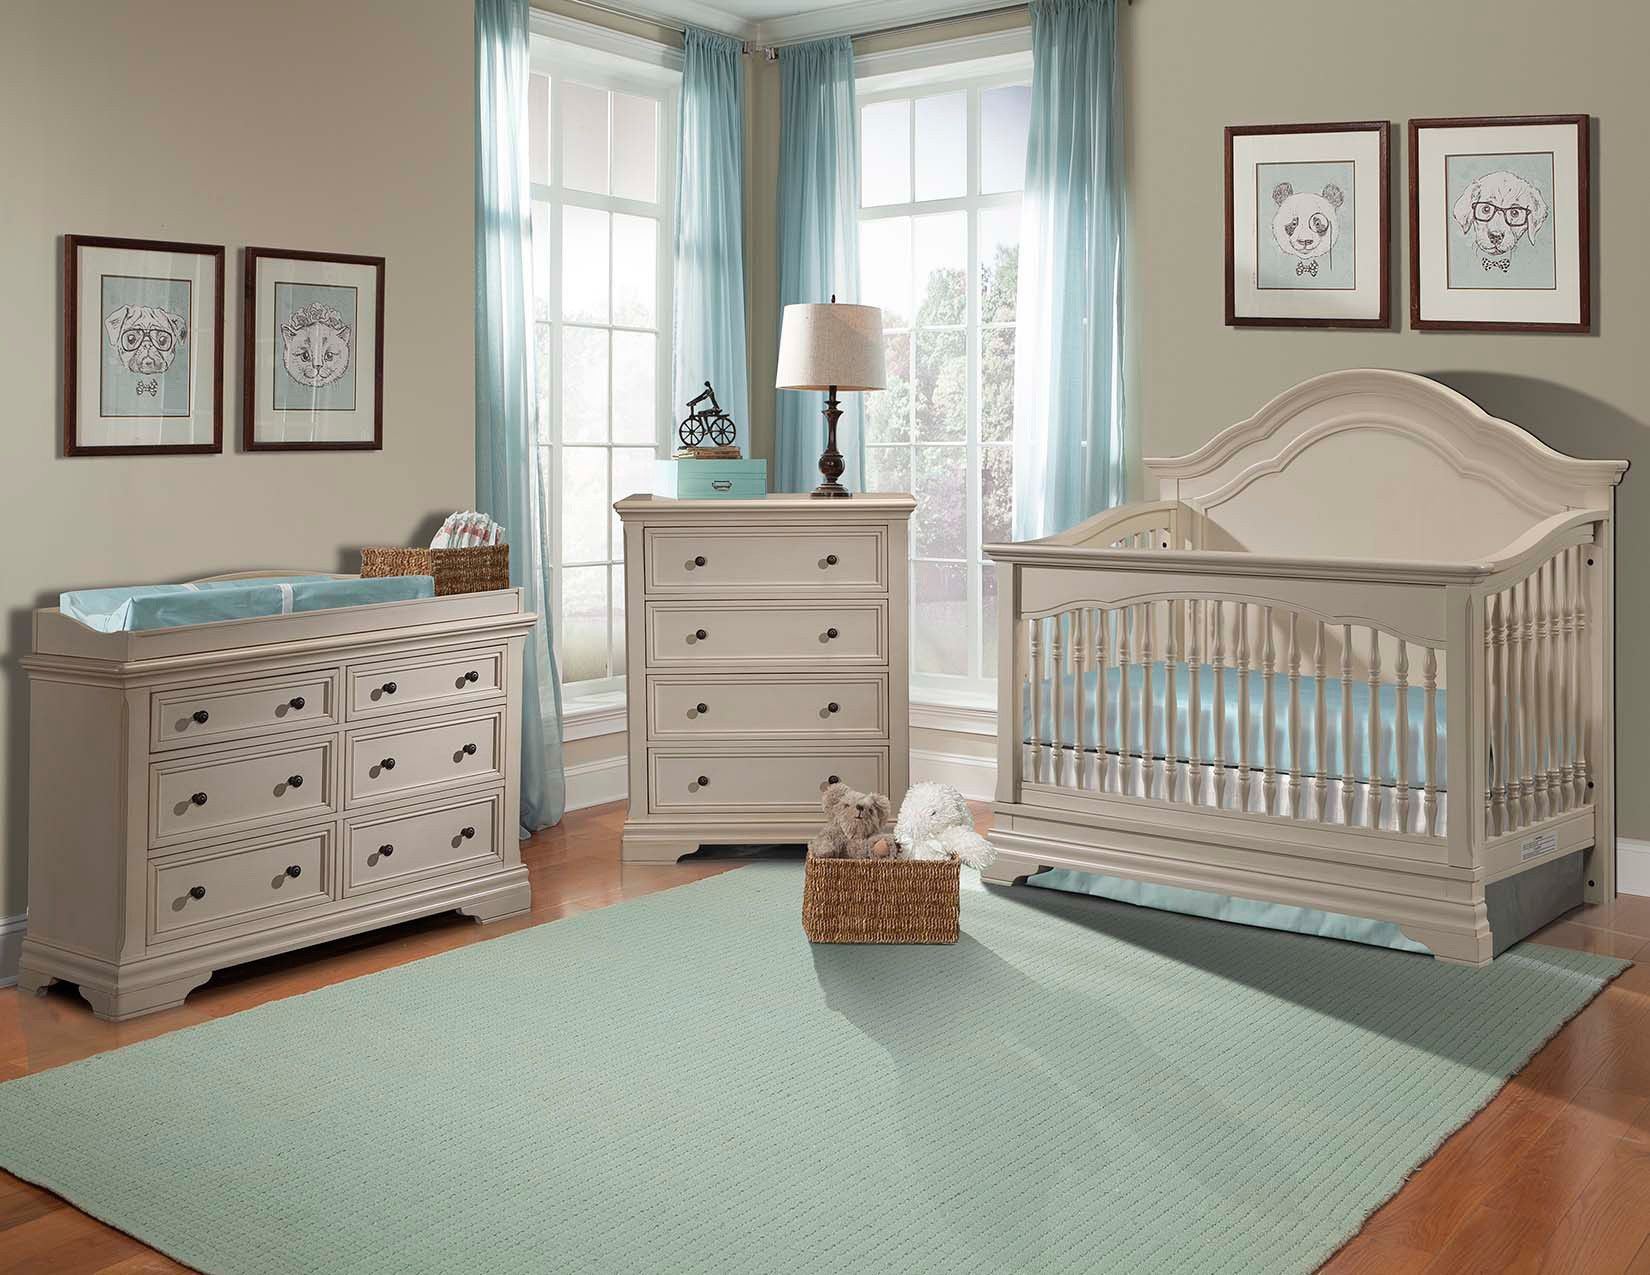 Stella baby and child athena 3 piece nursery set in belgium cream also comes in french white at Baby bedroom furniture sets